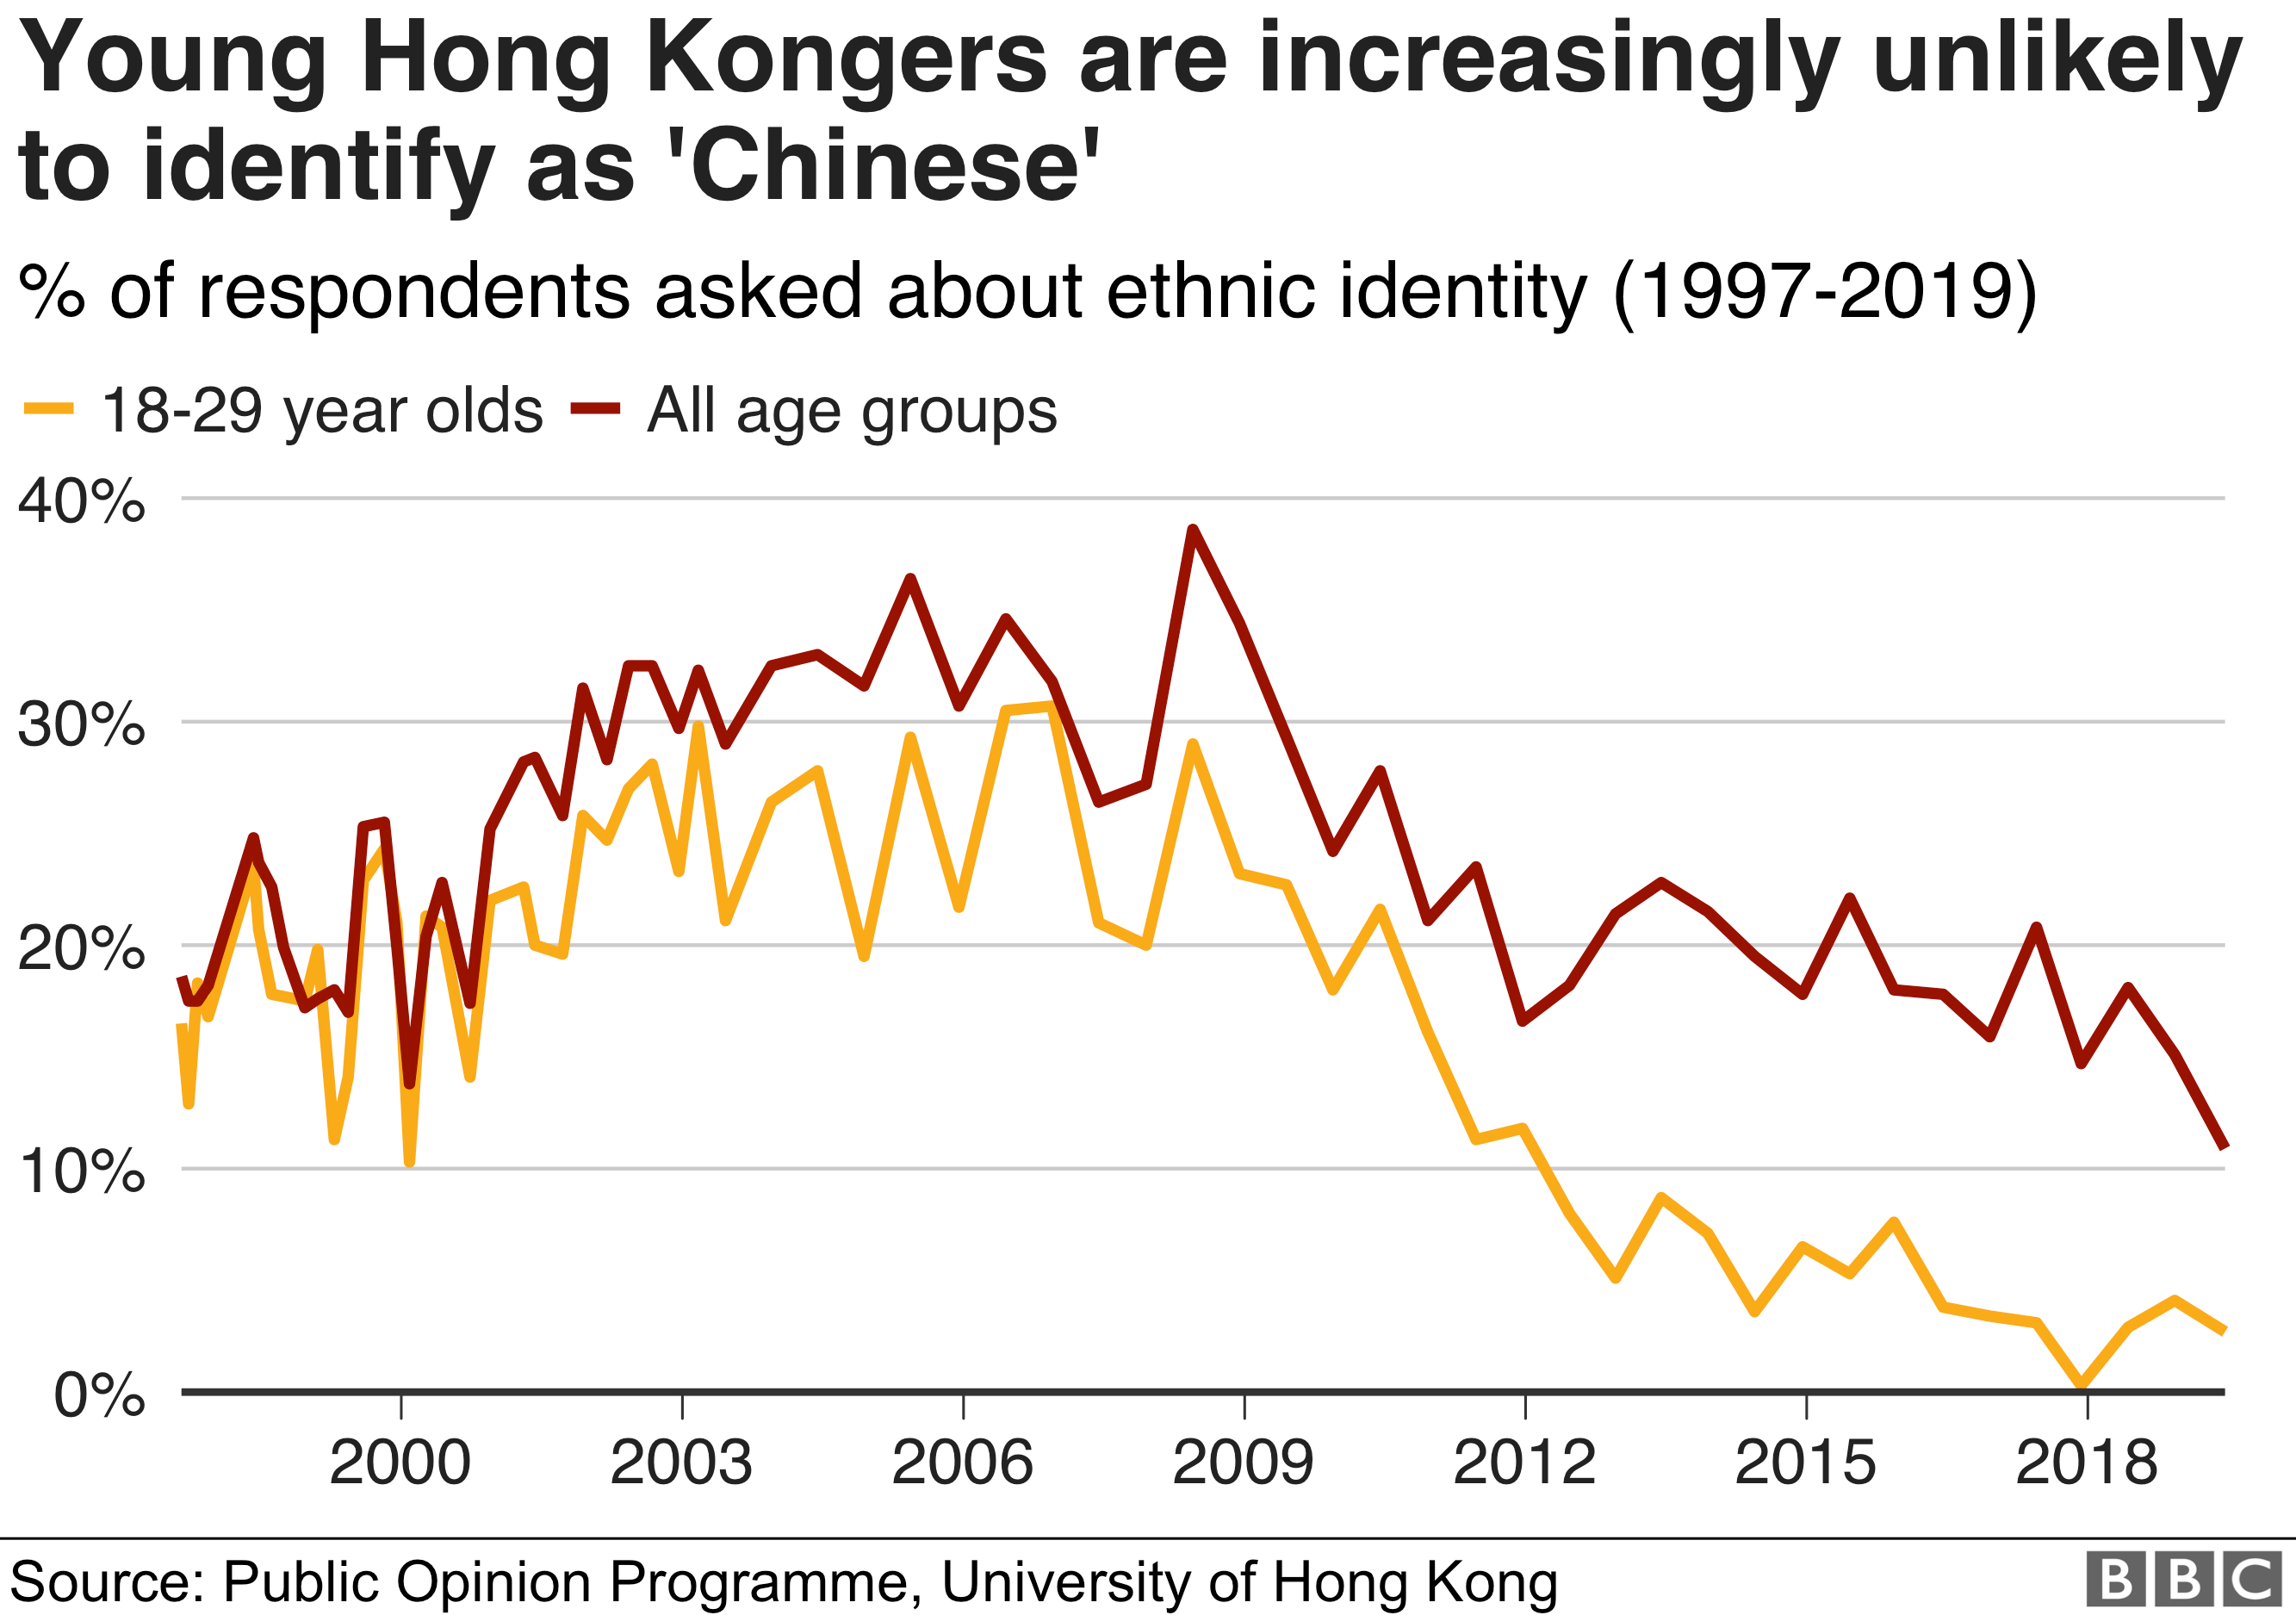 """Chart from the late 1990s to 2019 showing that Hong Kongers, especially younger ones, are increasingly unlikely to identify as """"Chinese"""""""